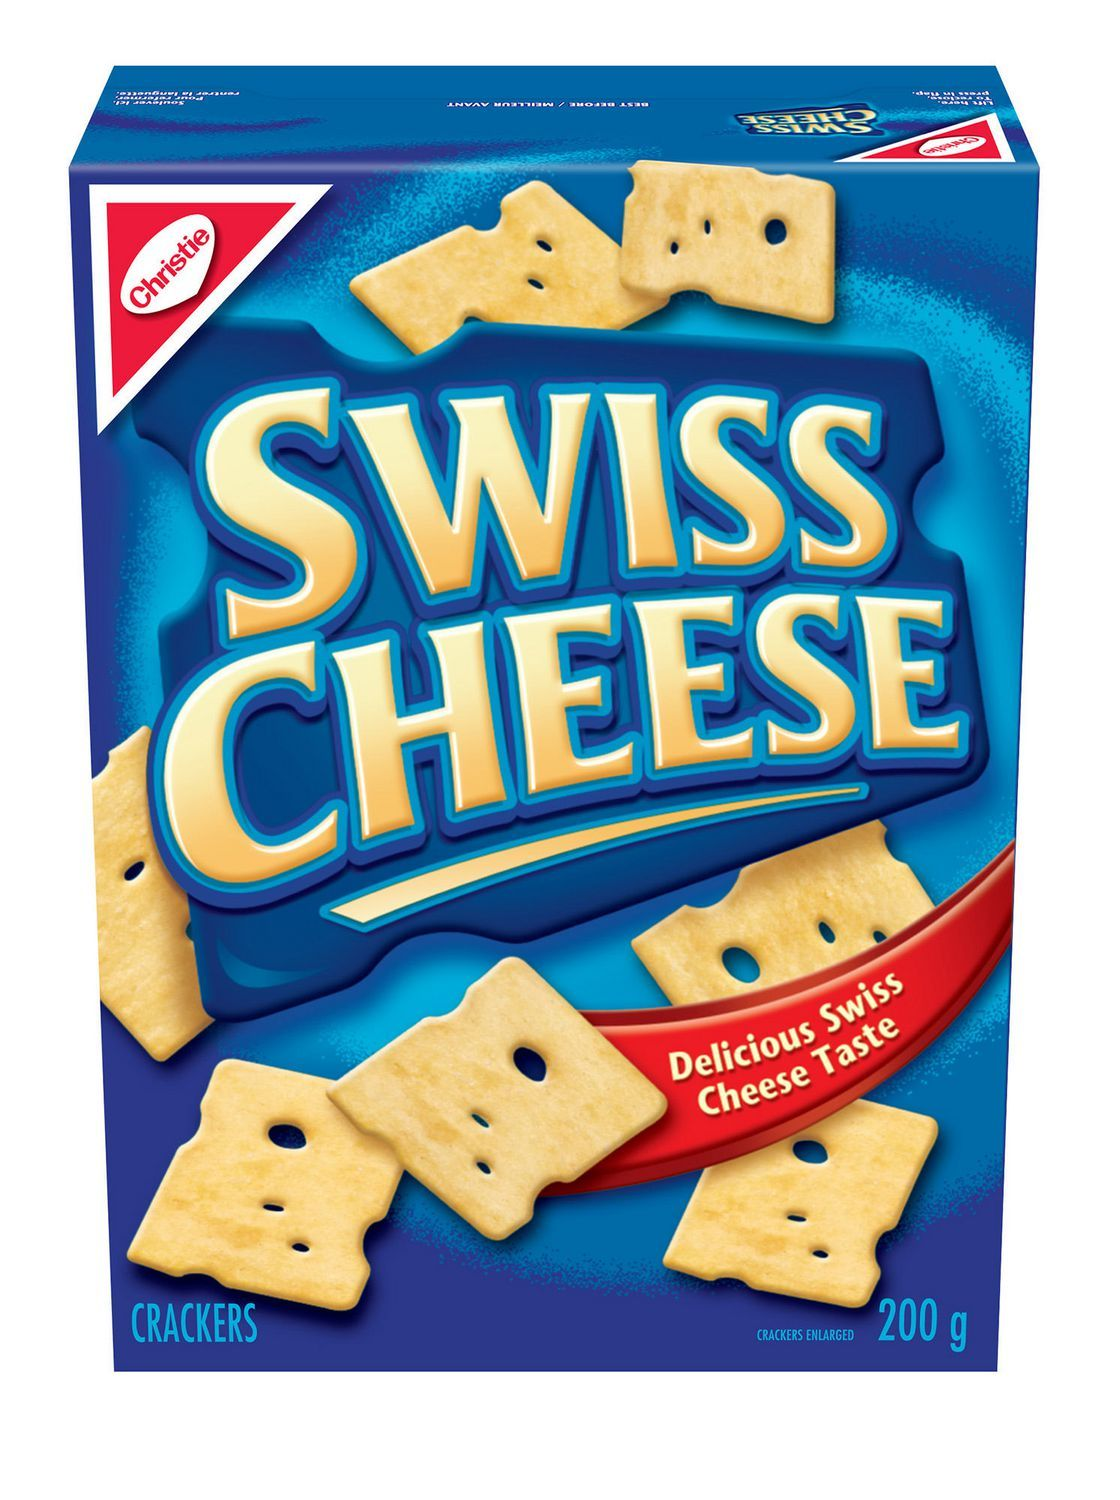 ... Swiss Cheese Crackers 4 boxes 200g each Canadian made - Crackers